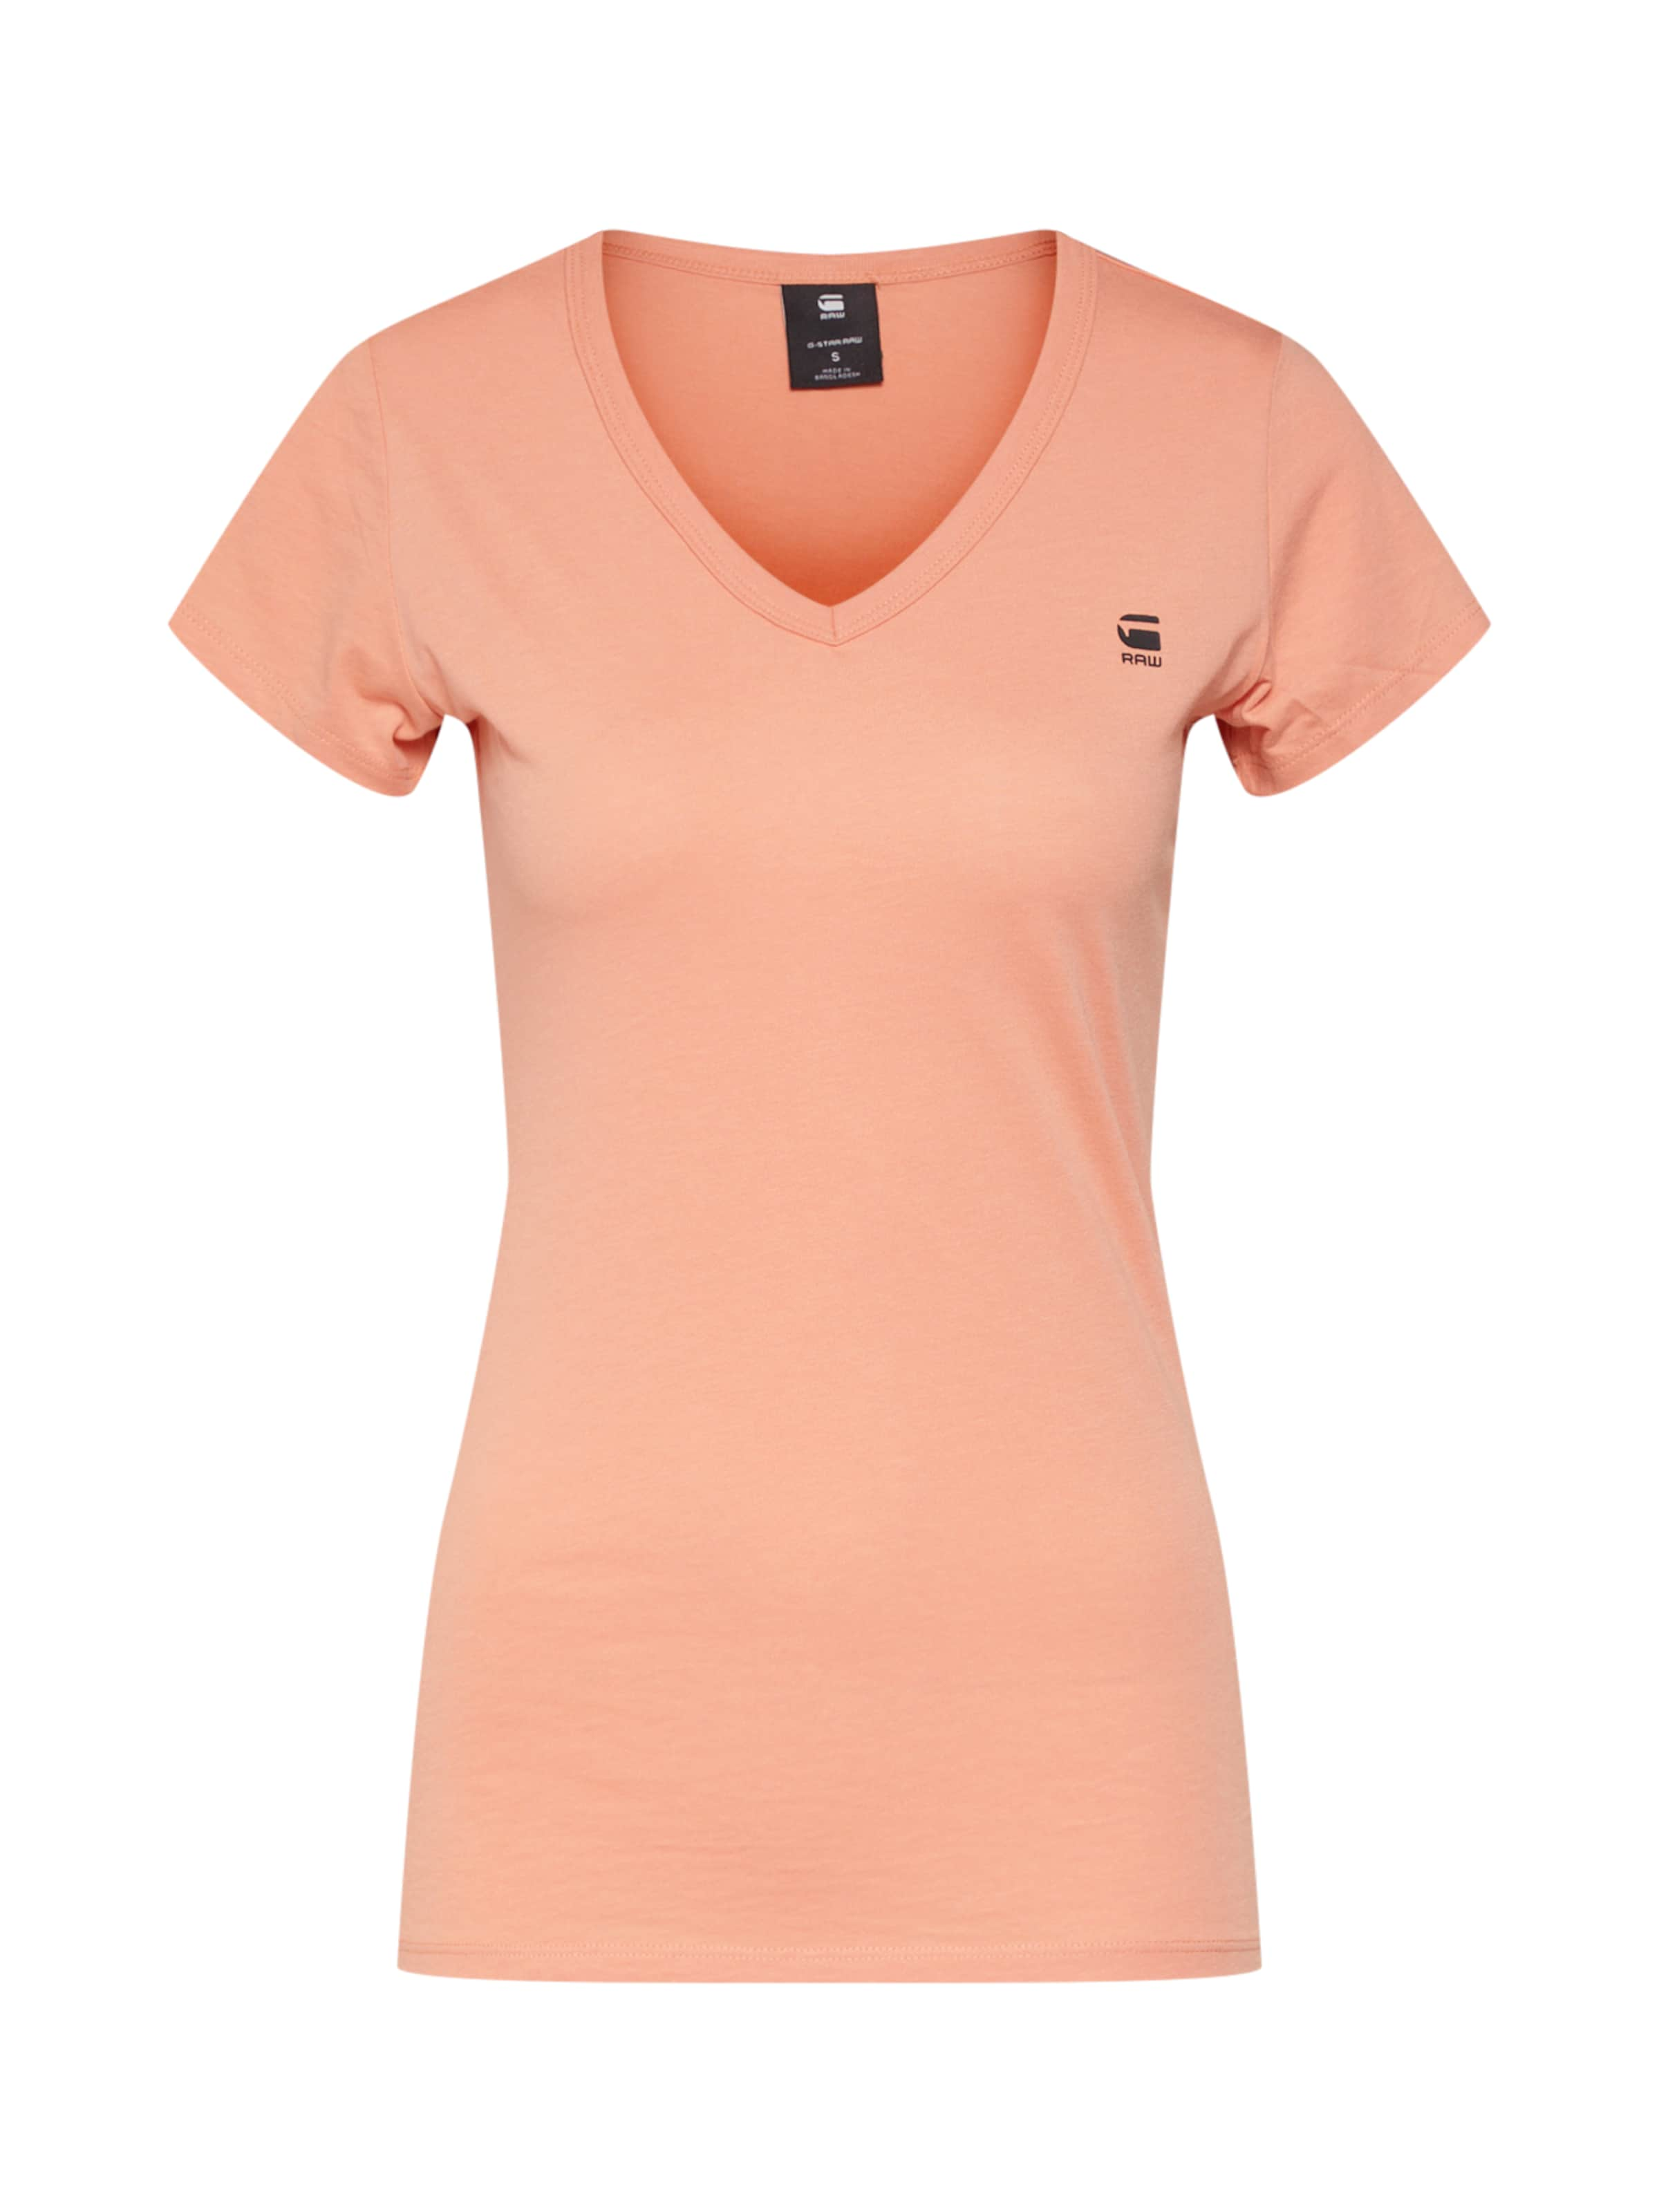 'eyben Raw shirt En V' star T Pastel Orange G PkZOTXiu